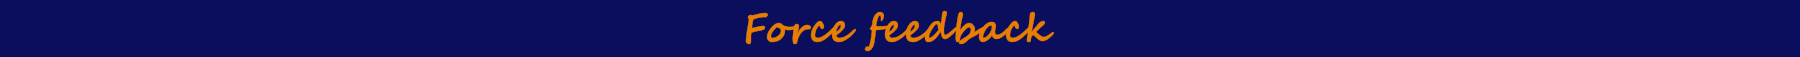 http://madcat.zero.free.fr/images/cswv2%20review/ffb.png